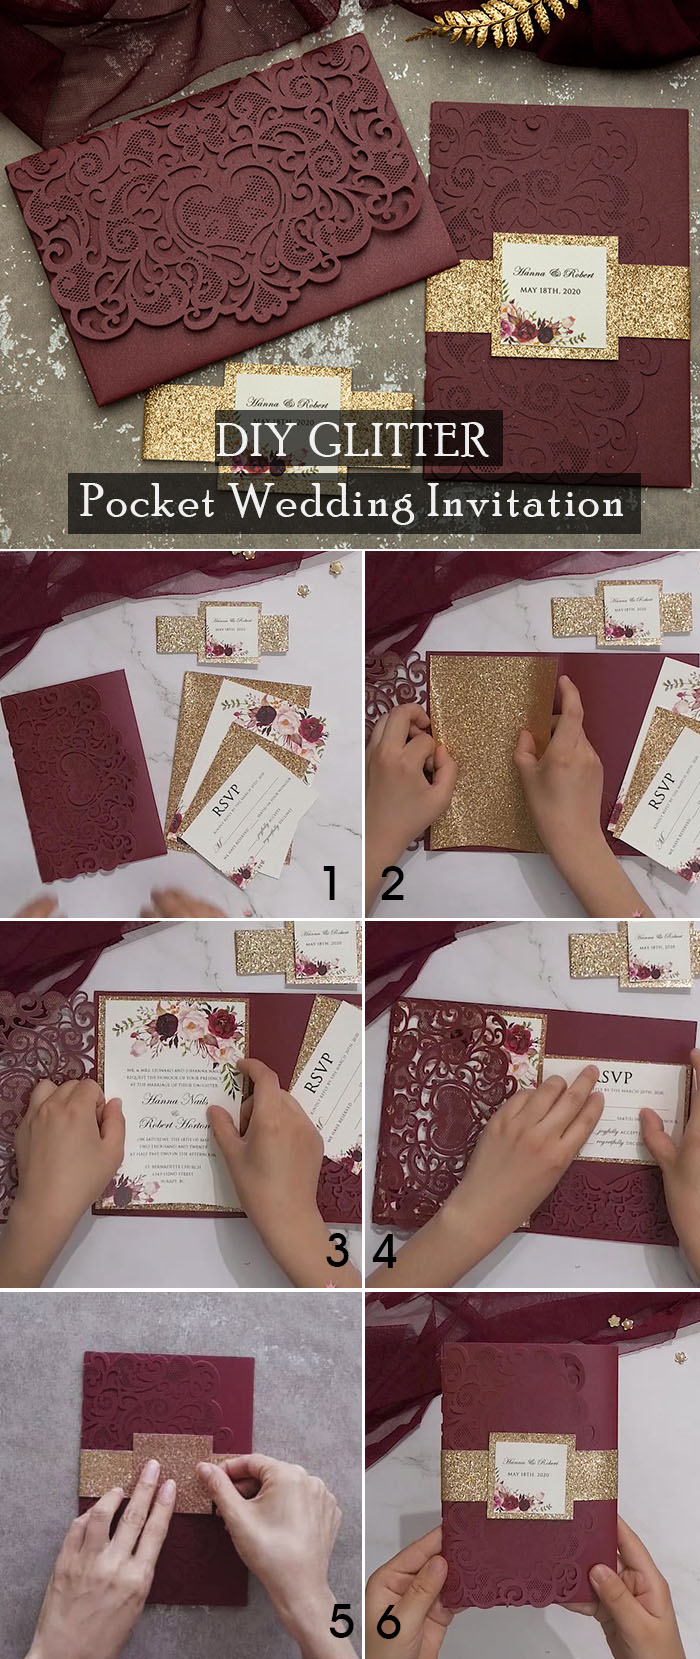 DIY tutorial to add glitters to your wedding invitations